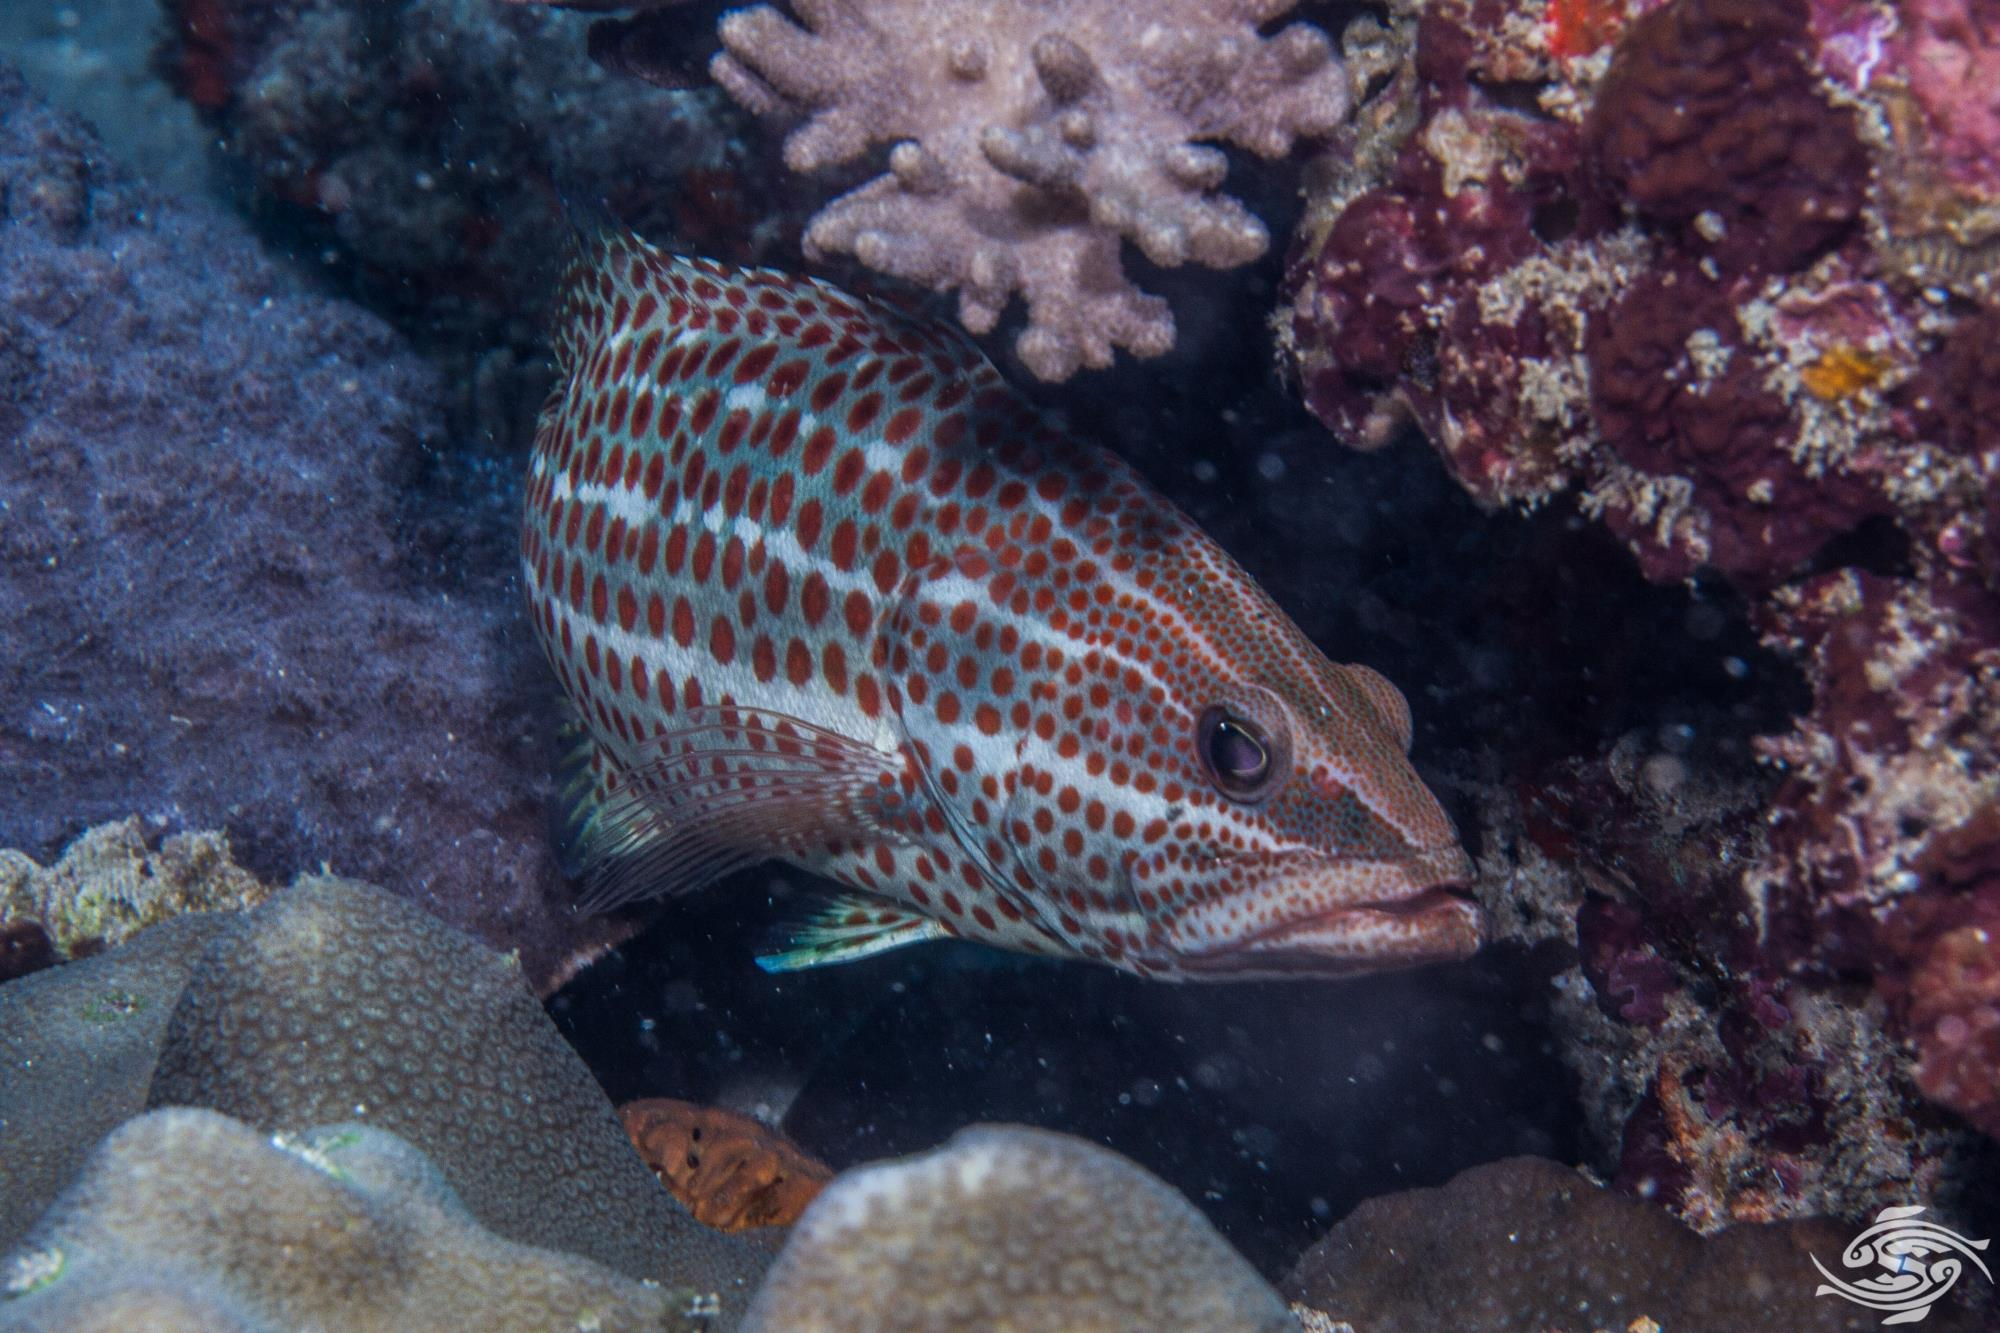 Slender Grouper Epinephelus leucogrammicusis is also known as the Slender Rockcod, White-lined Grouper and White-lined Rockcod